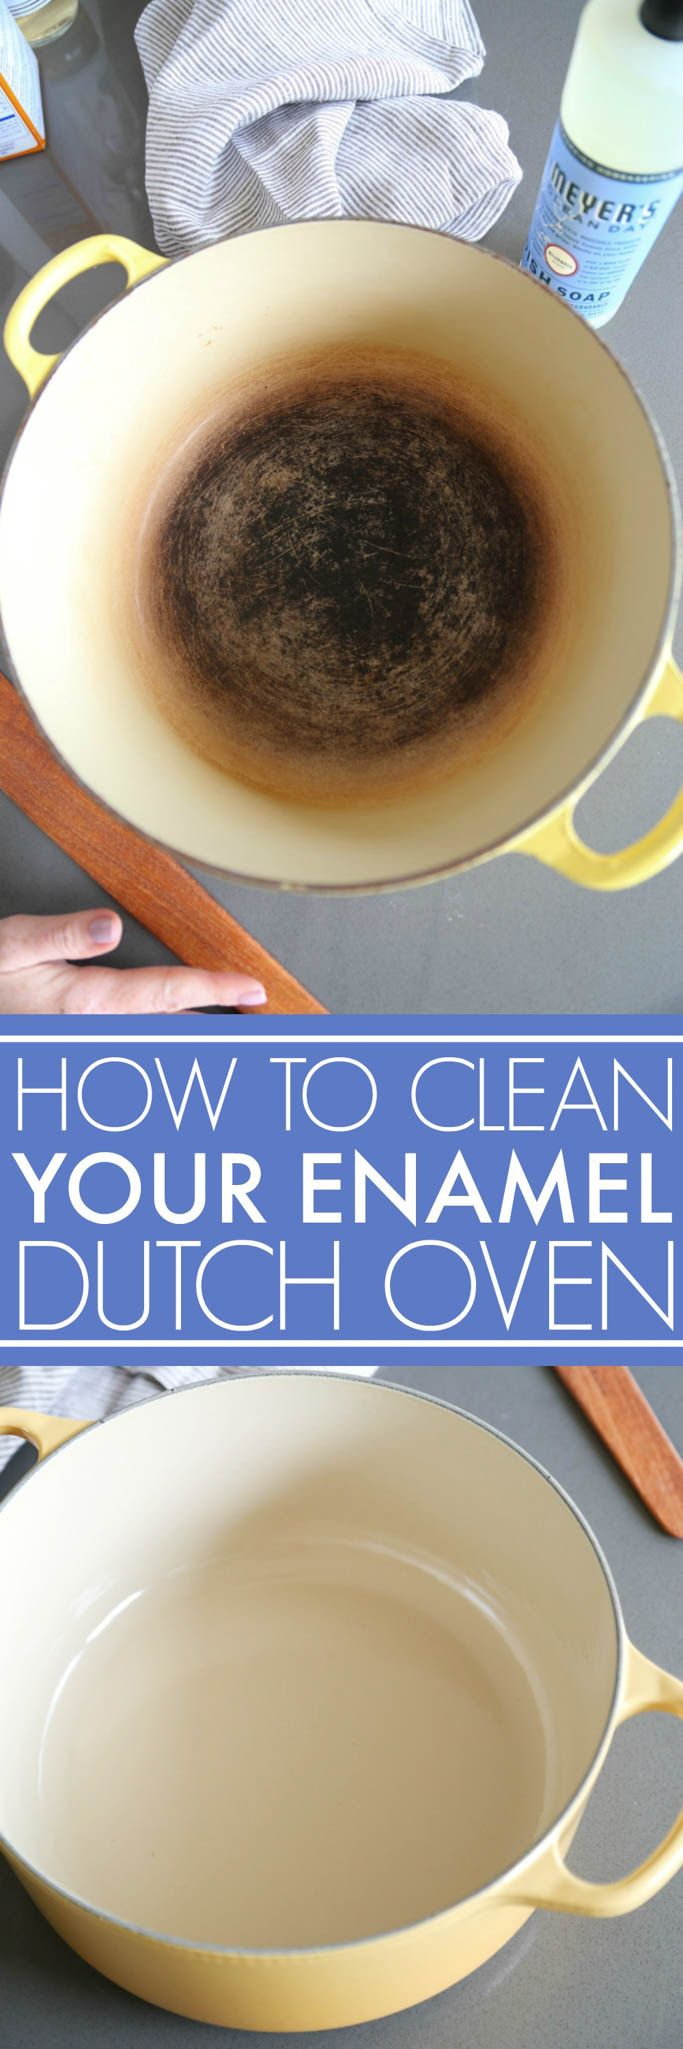 Learn how to clean an enameled cast iron dutch oven with baking soda. It will get rid of any stains and stuck on food without ruining your enameled pot. | platingsandpairings.com